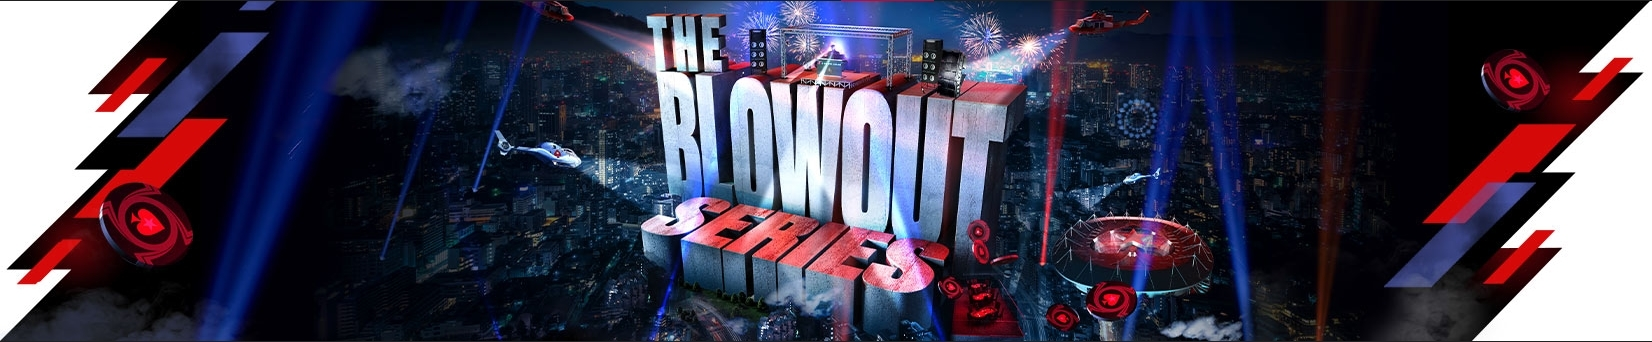 Blowout Series: 60M$ Guaranteed Late December on PokerStars